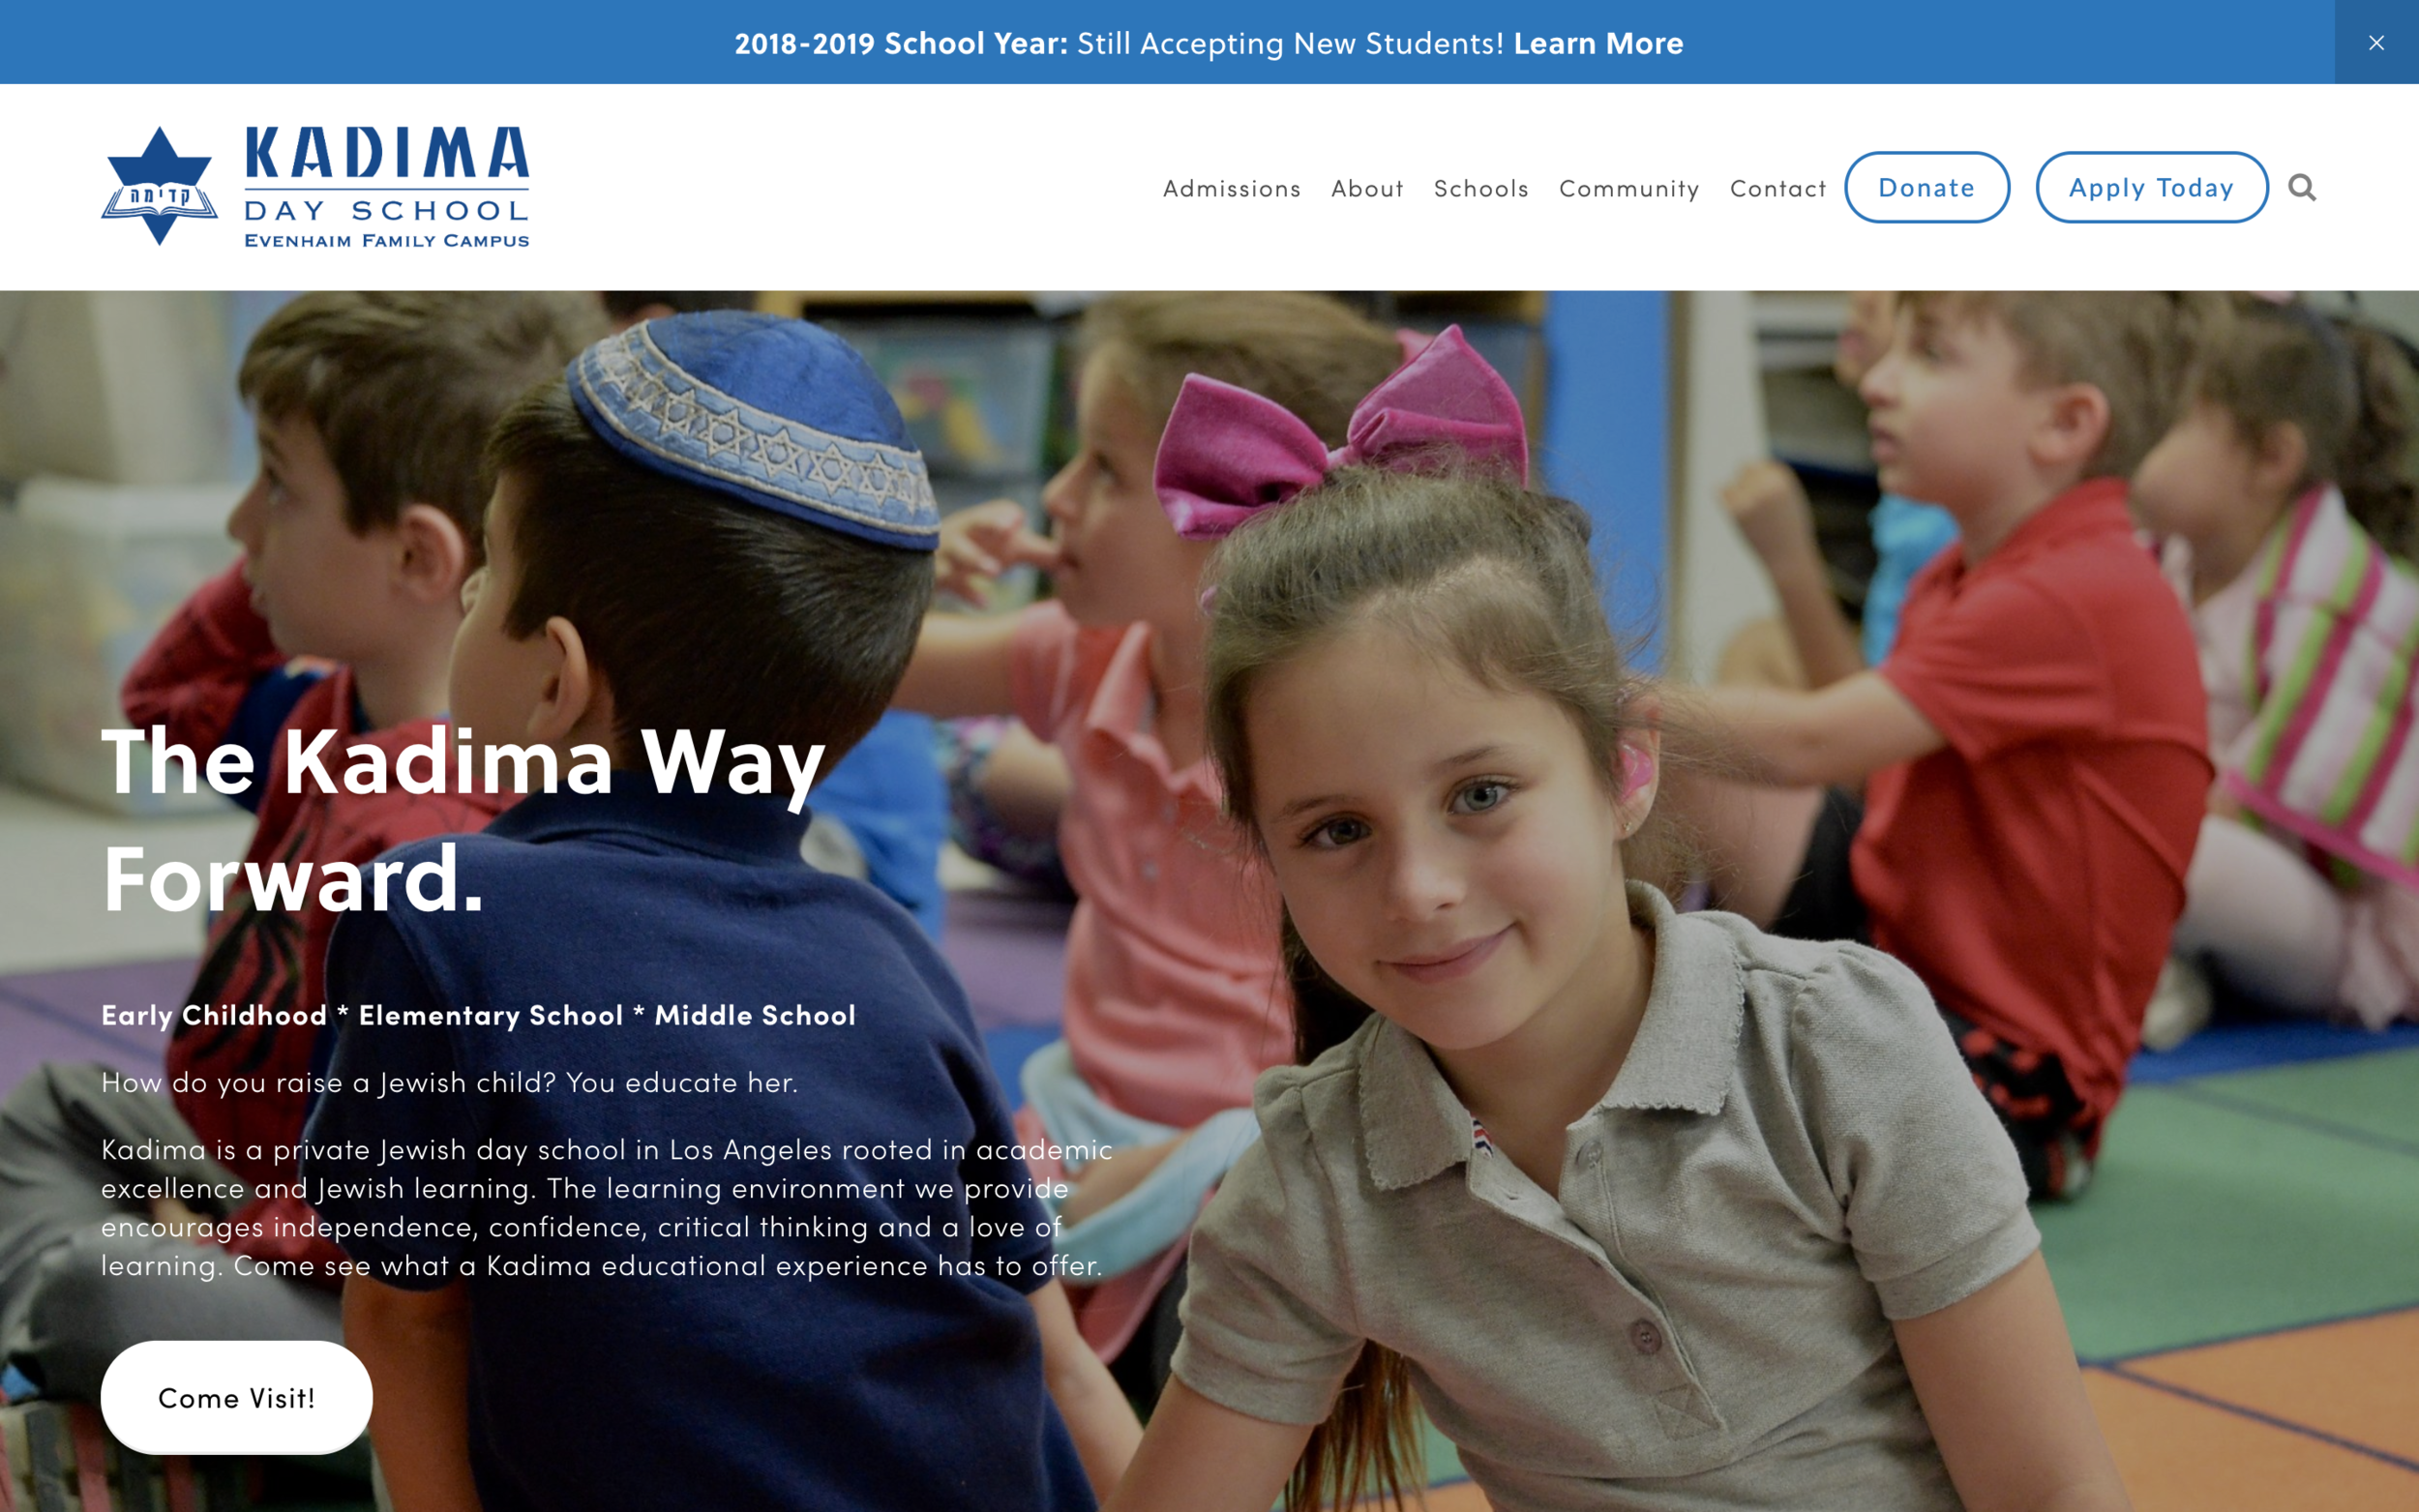 kadimadayschool.org - Modern School Website On SquarespaceThis modern Squarespace website is the perfect tool for Kadima Day School. They needed their website to be a marketing tool and resourceful for their users and we accomplished all of that in this modern Squarespace website.